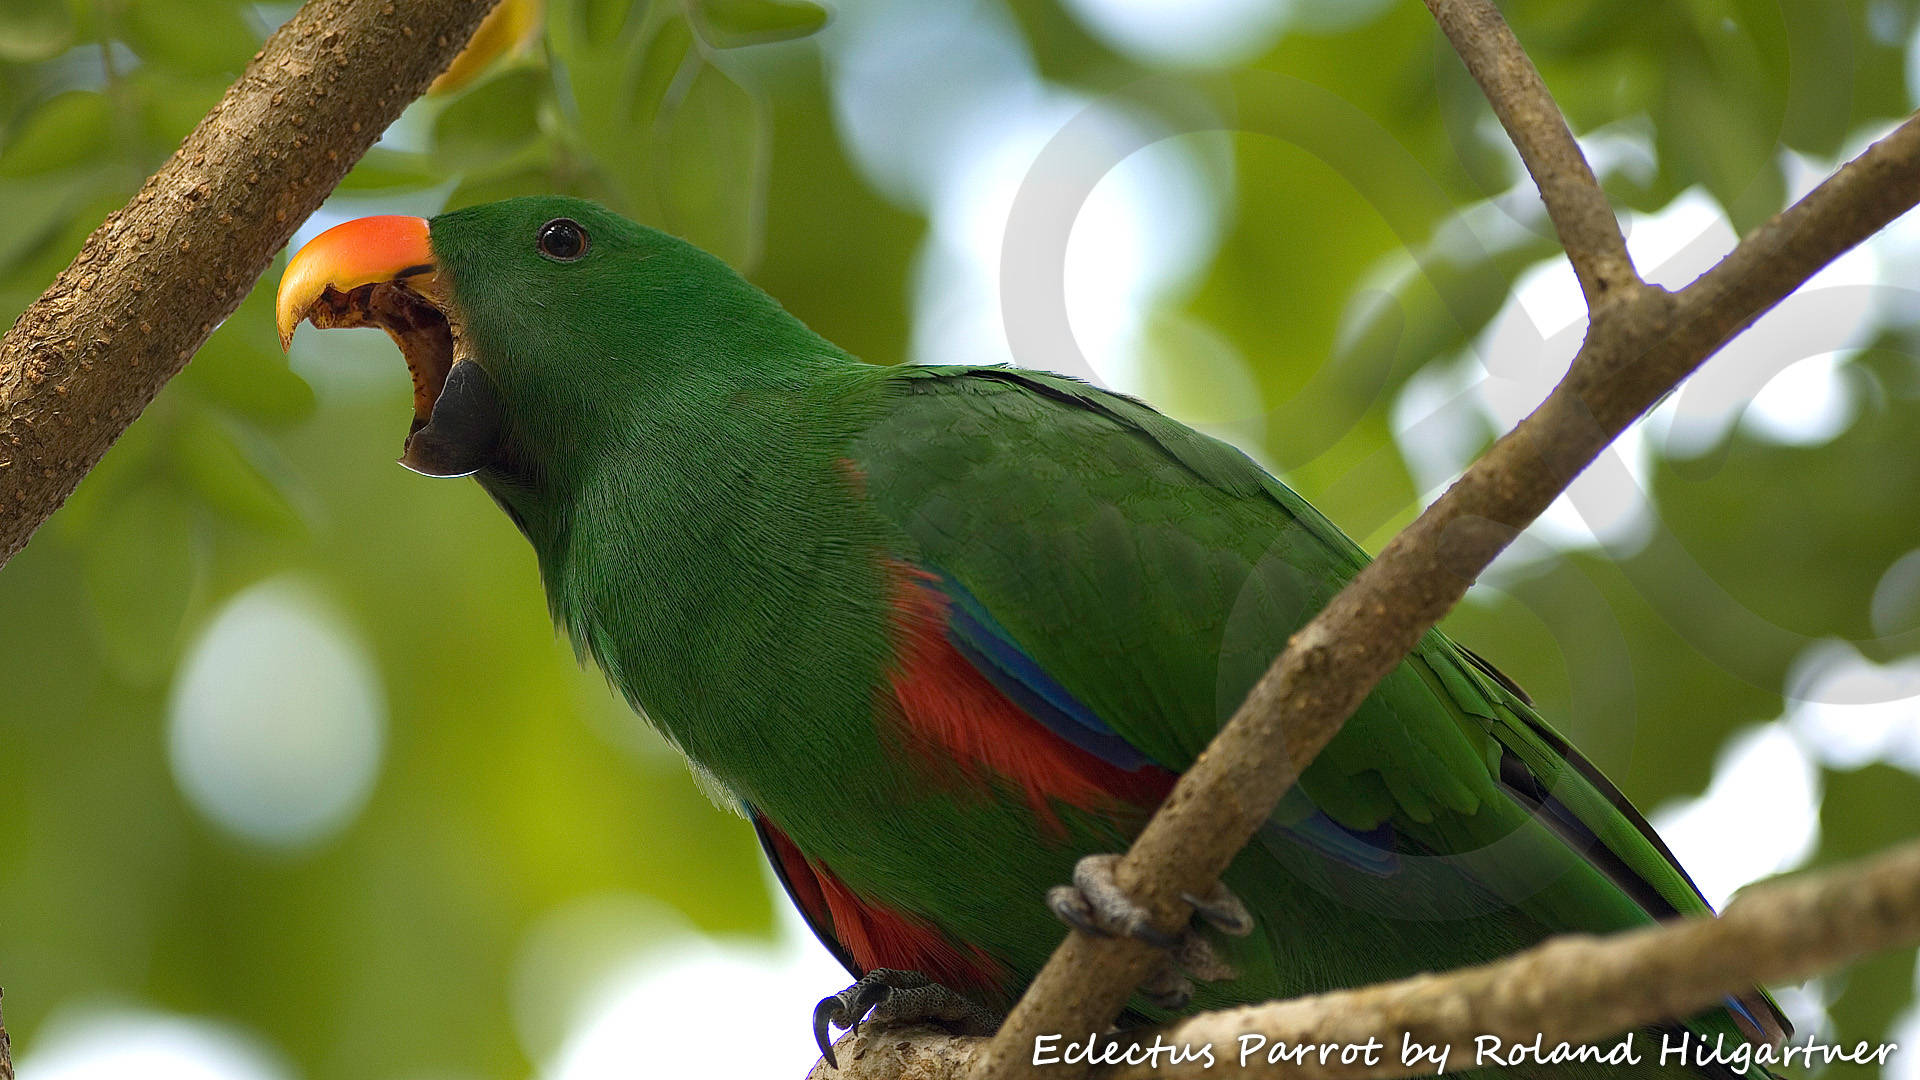 Eclectus Parrot Eclectus roratus is widely distributed throughout the lowland forests of the New Guinea region and beyond. Copyright © Roland Hilgartner